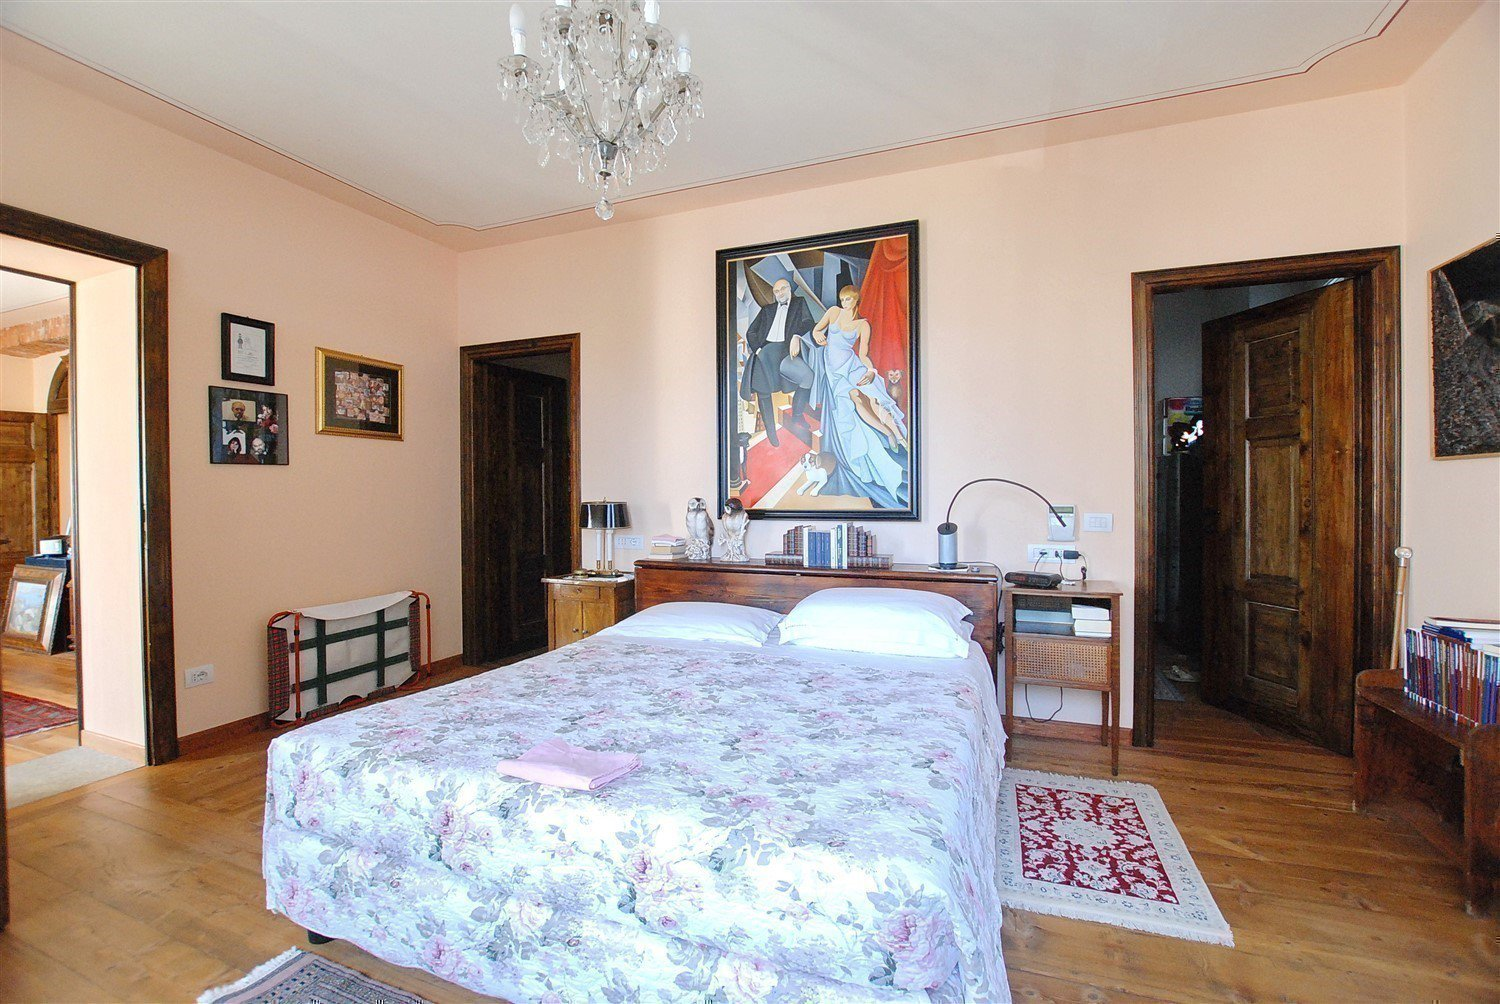 Historic villa with guesthouse and land for sale in Verbania - bedroom